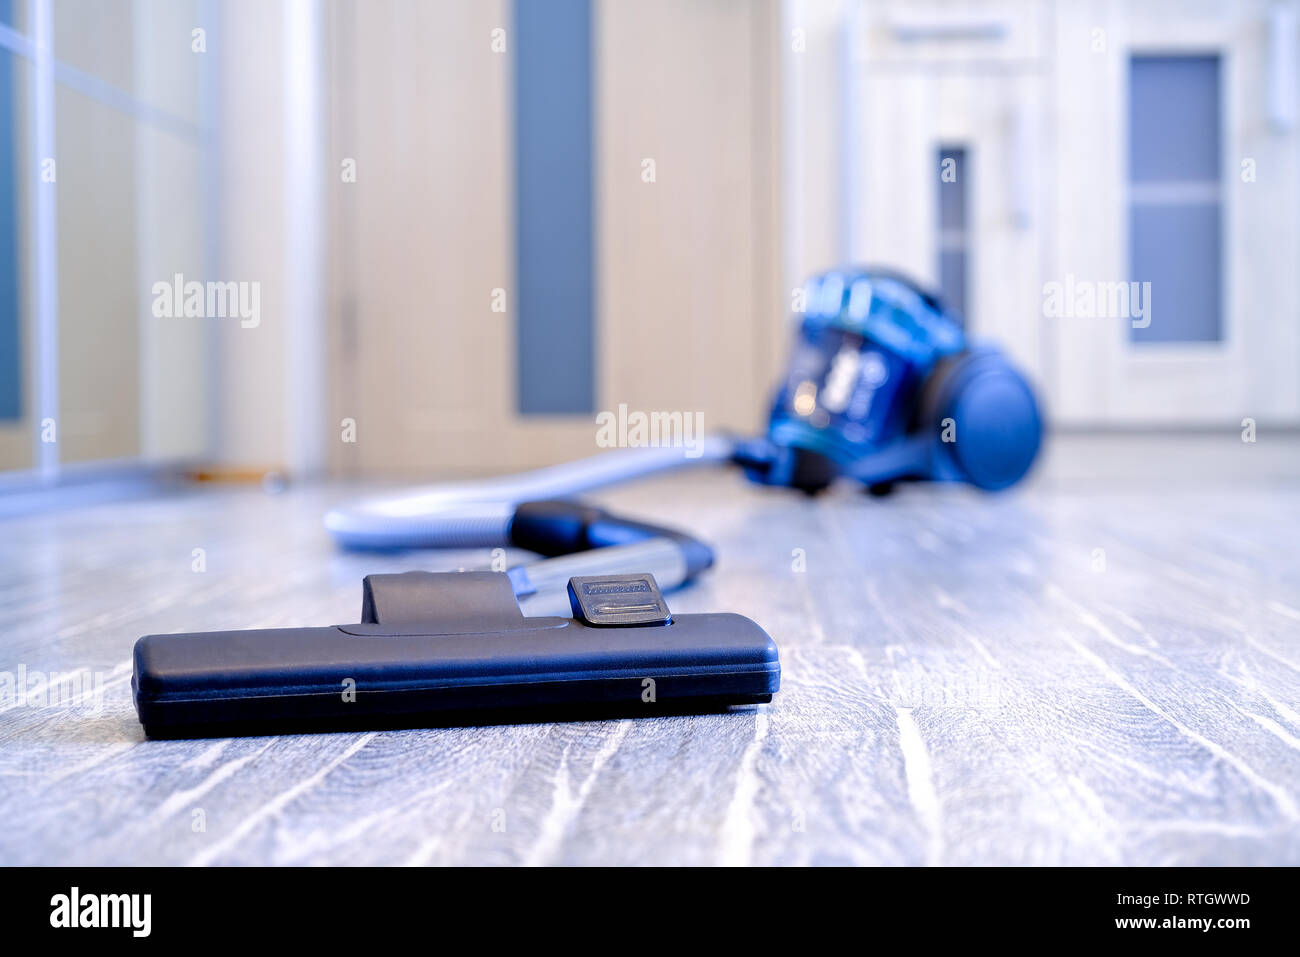 Household appliances, vacuum cleaner. The concept of cleanliness and order in the premises - Stock Image